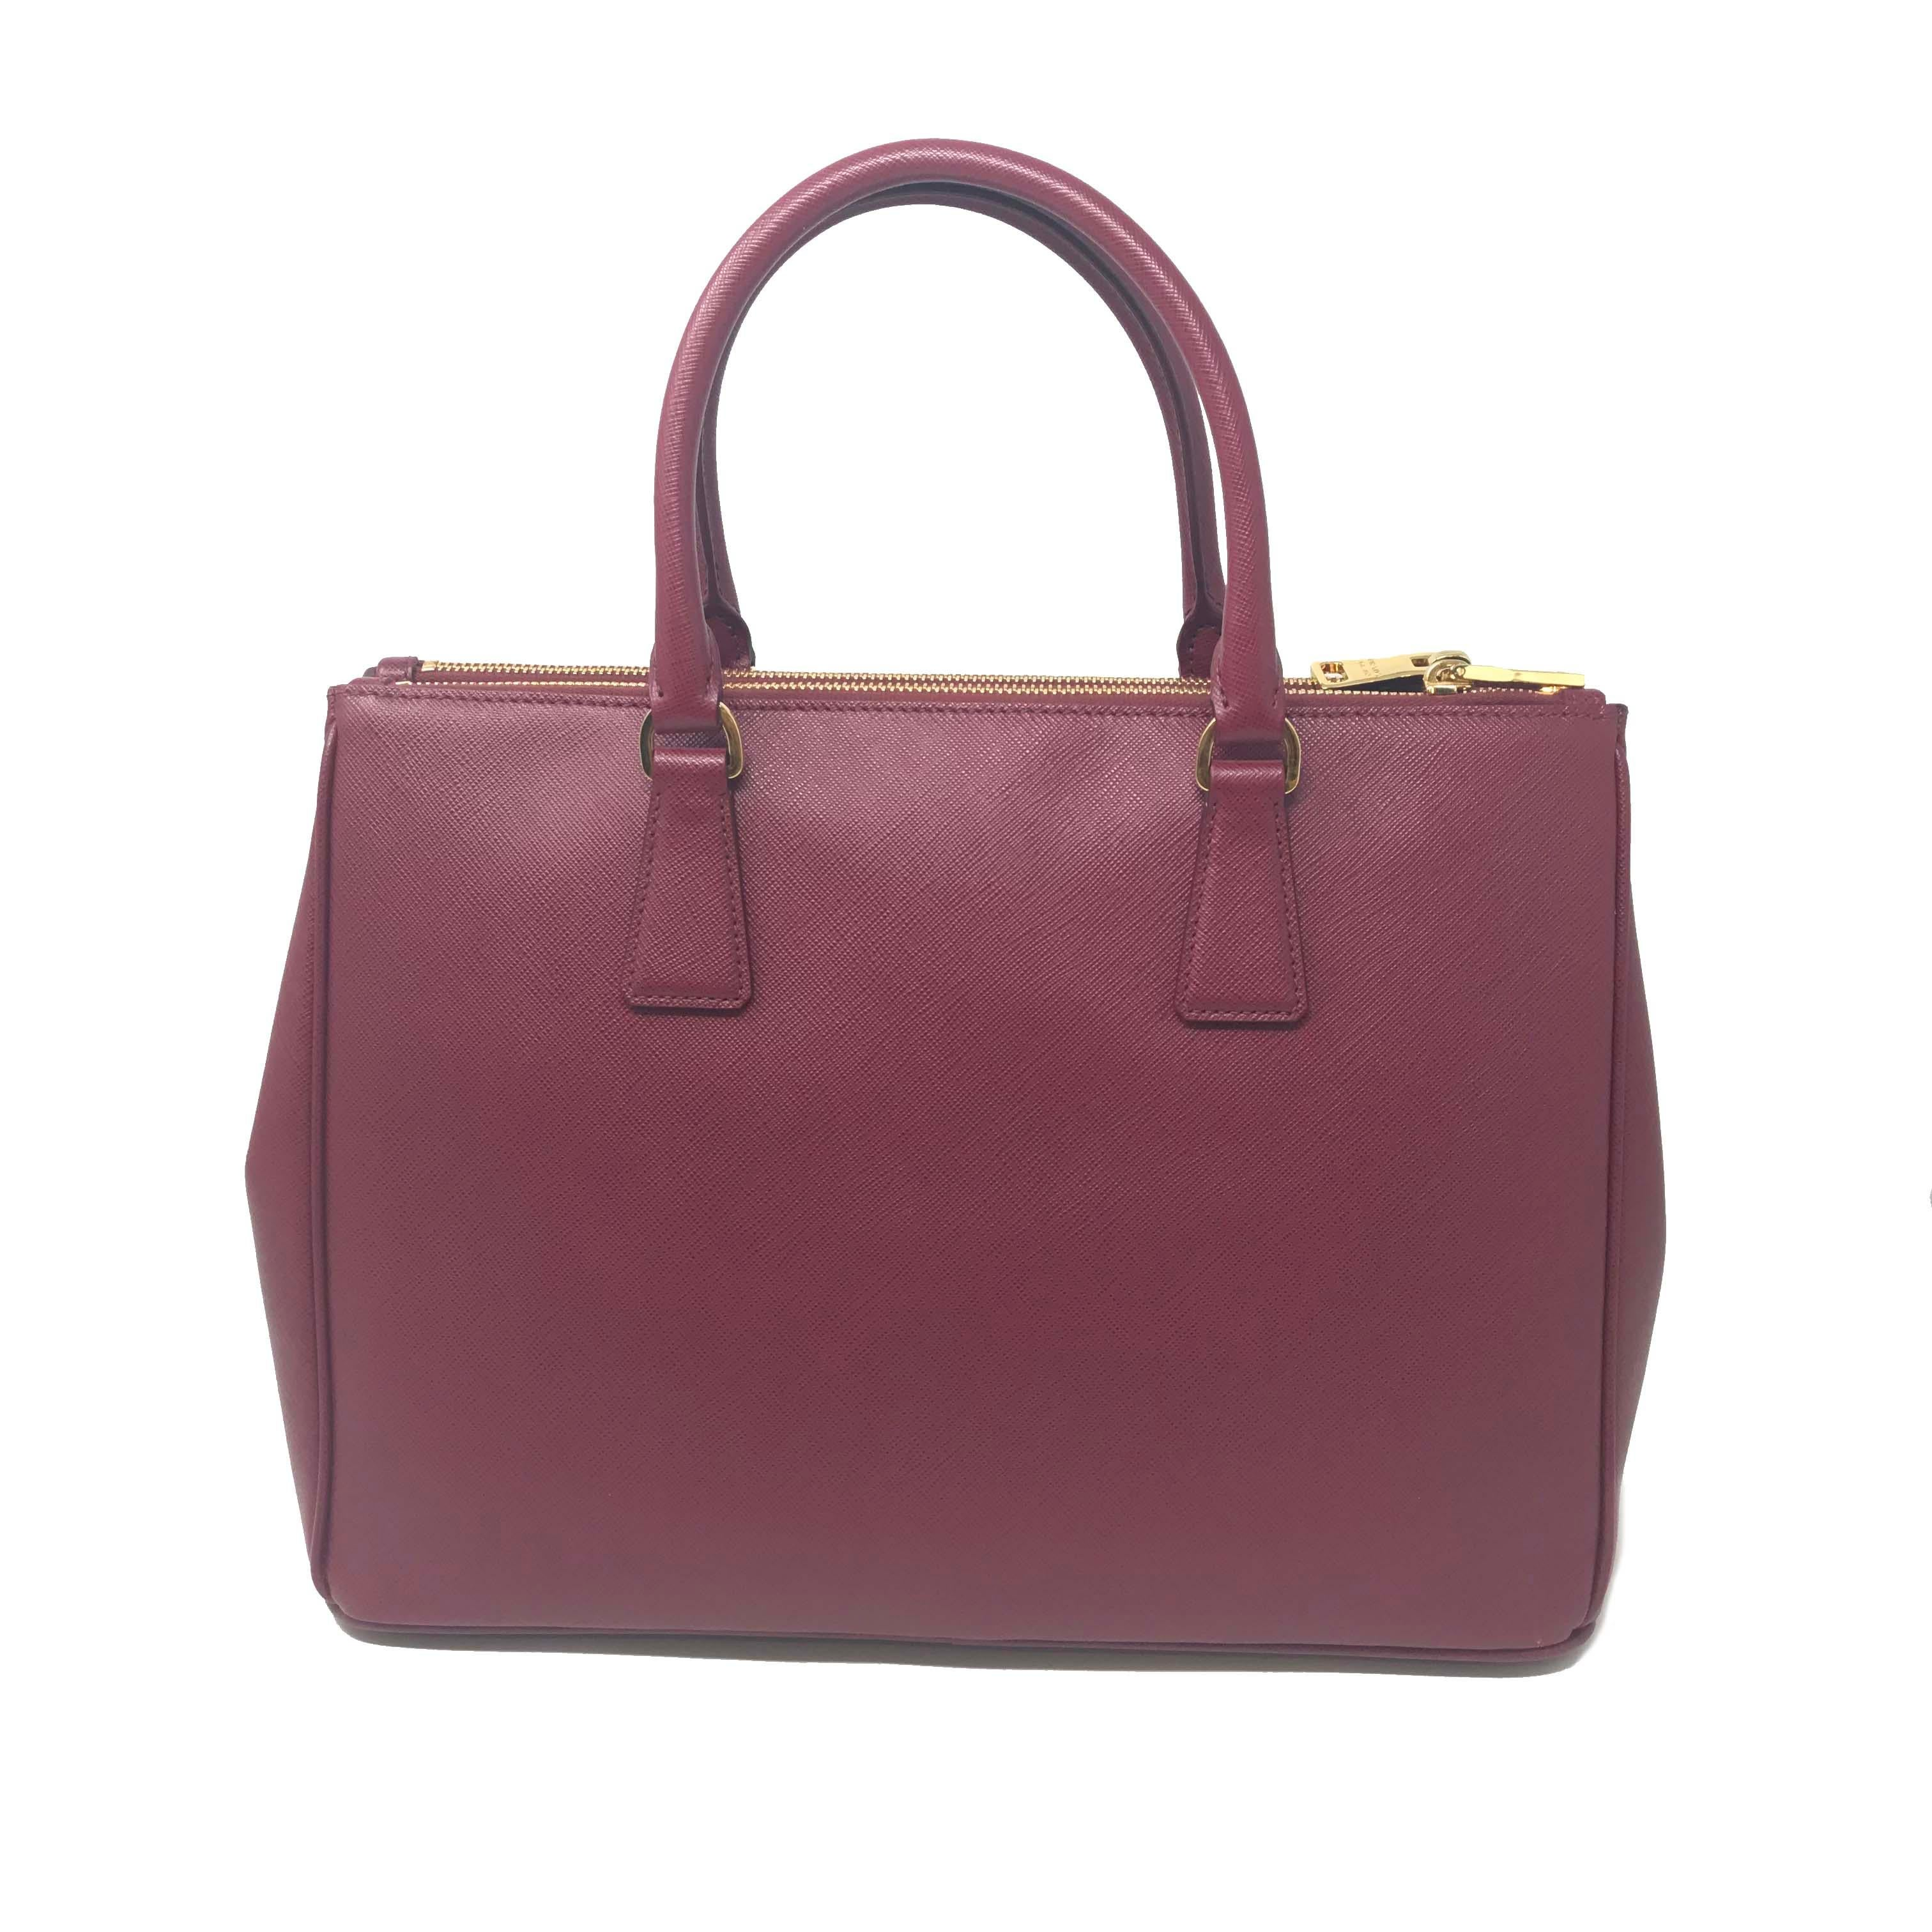 ef84a22961b003 Prada 1BA274 Galleria Cherry Saffiano Leather Women's Convertible Tote Bag  For Sale at 1stdibs